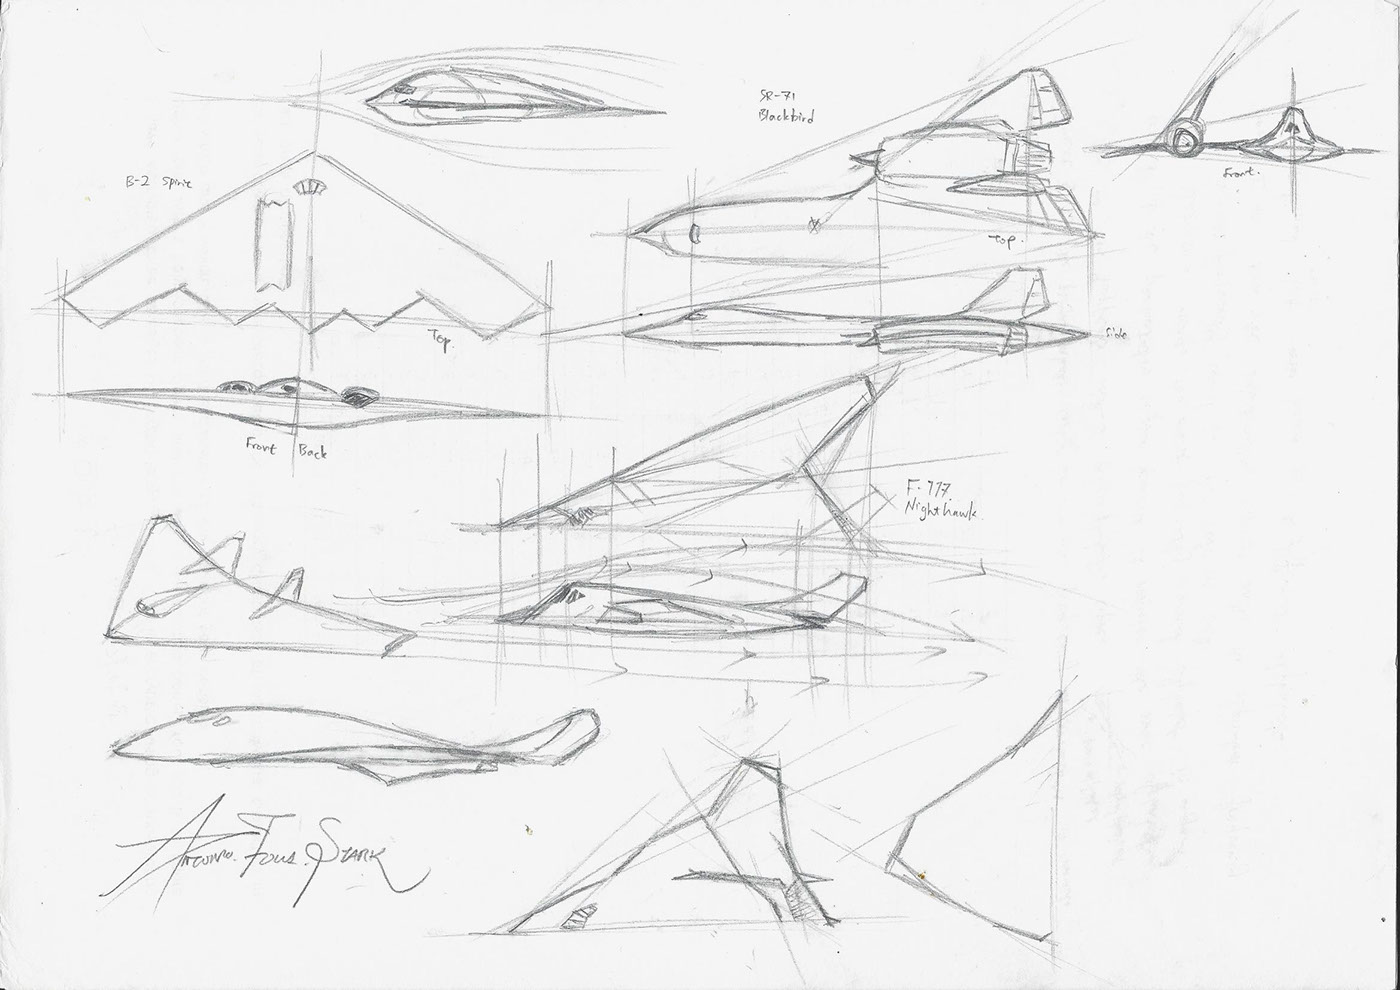 Aircraft Designs Compilations On Behance